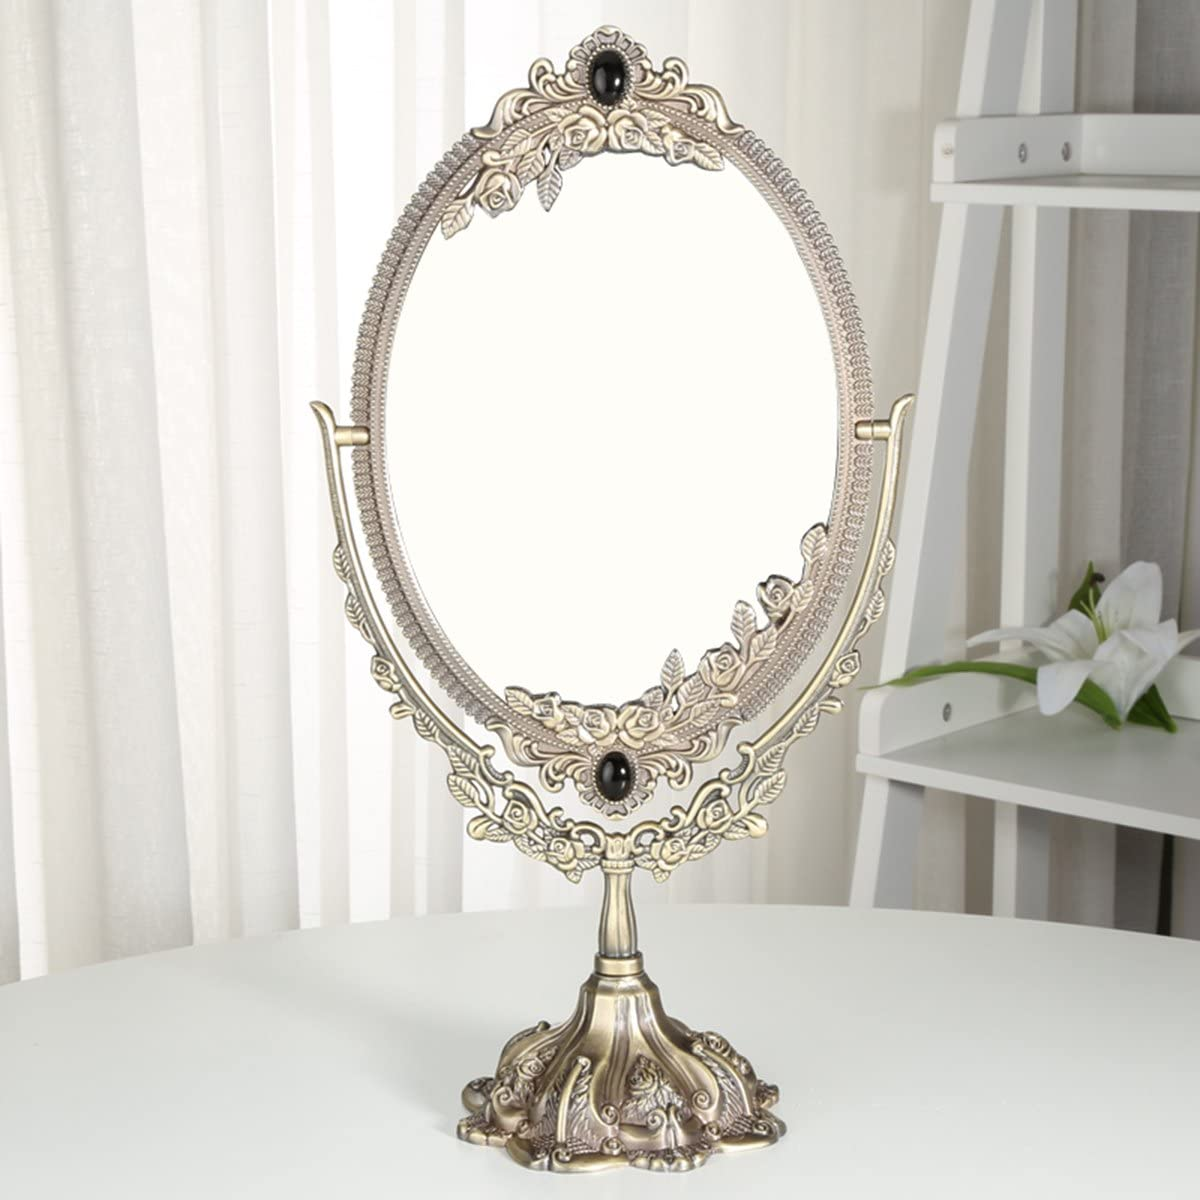 KINGFOM Antique Two Sided Swivel Oval Desktop Vanity Makeup Mirror with Embossed Roses and Mounted Beads for Home, Jewelry or Watches Cosmetics Showcase Large, Bronze